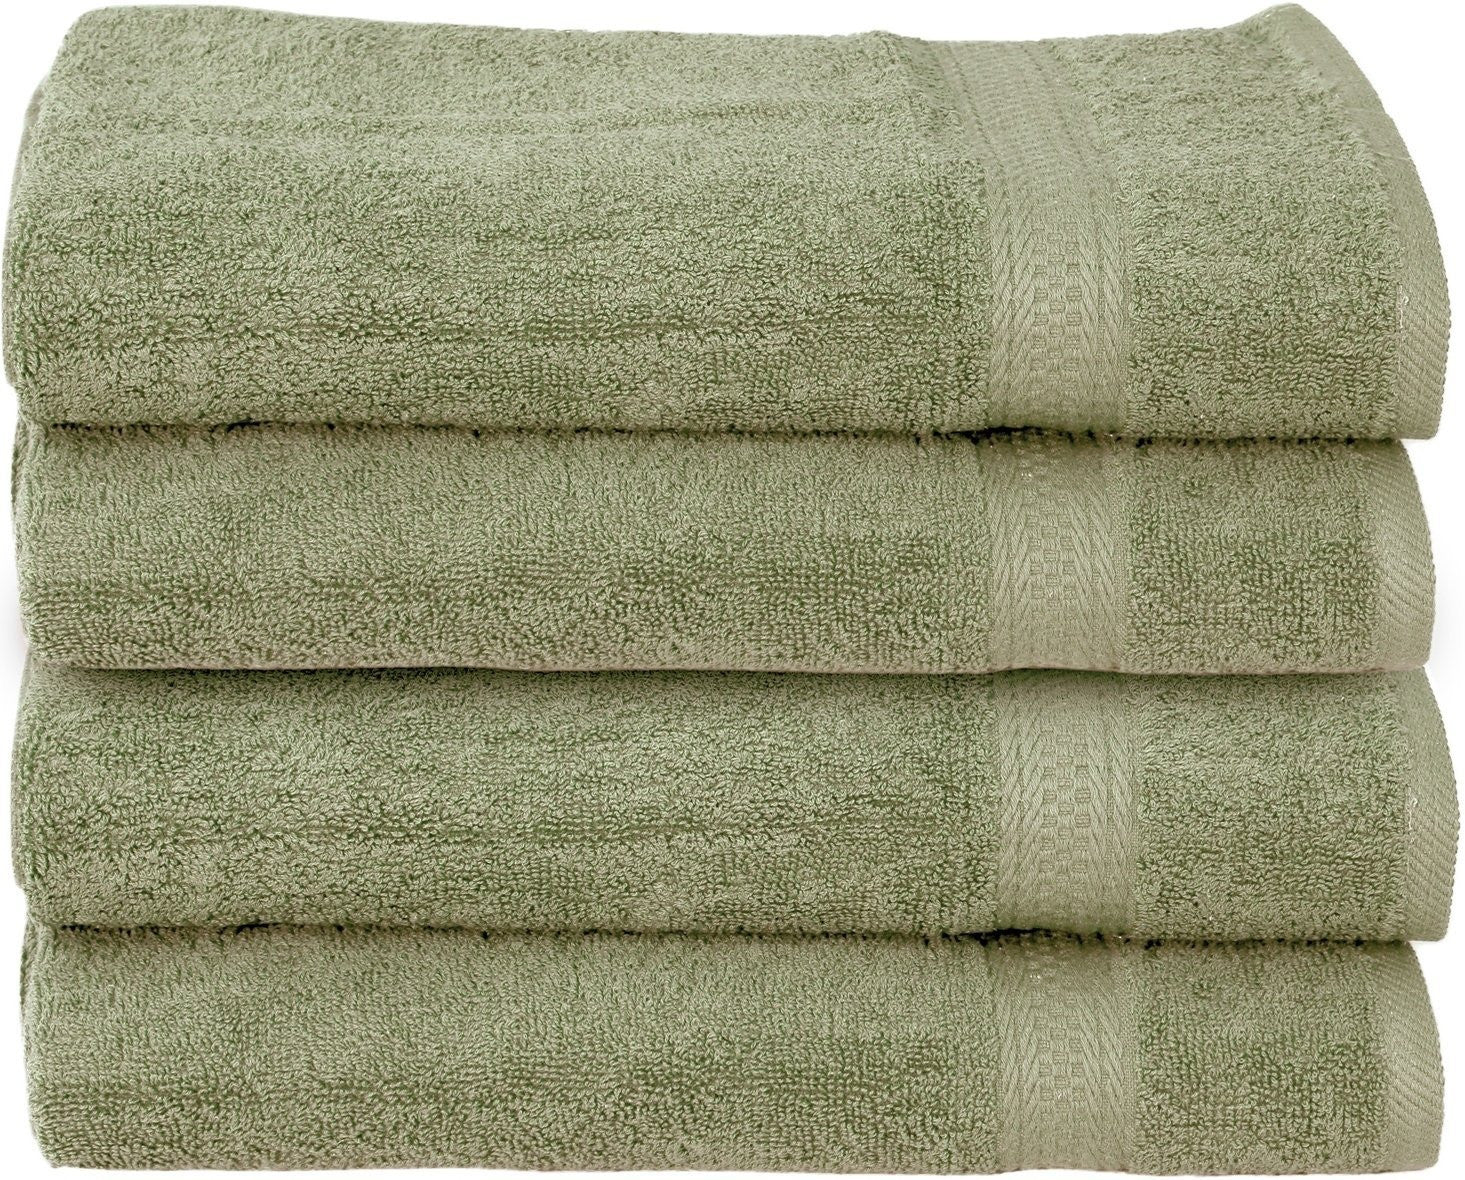 Luxury Hand Towels (Sage Green-4 Pack)